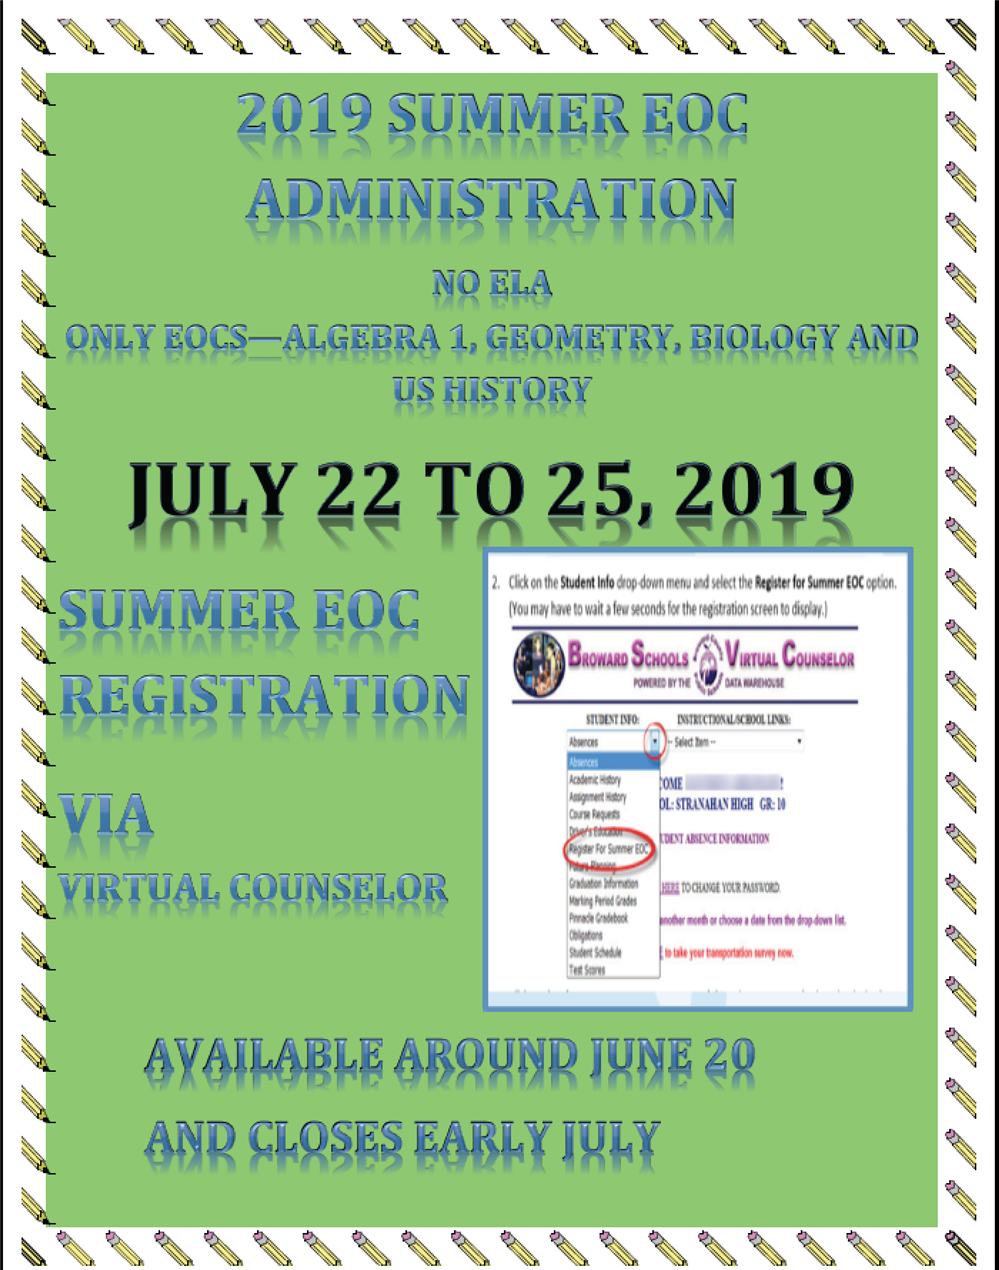 2019 Summer EOC Administration Sessions